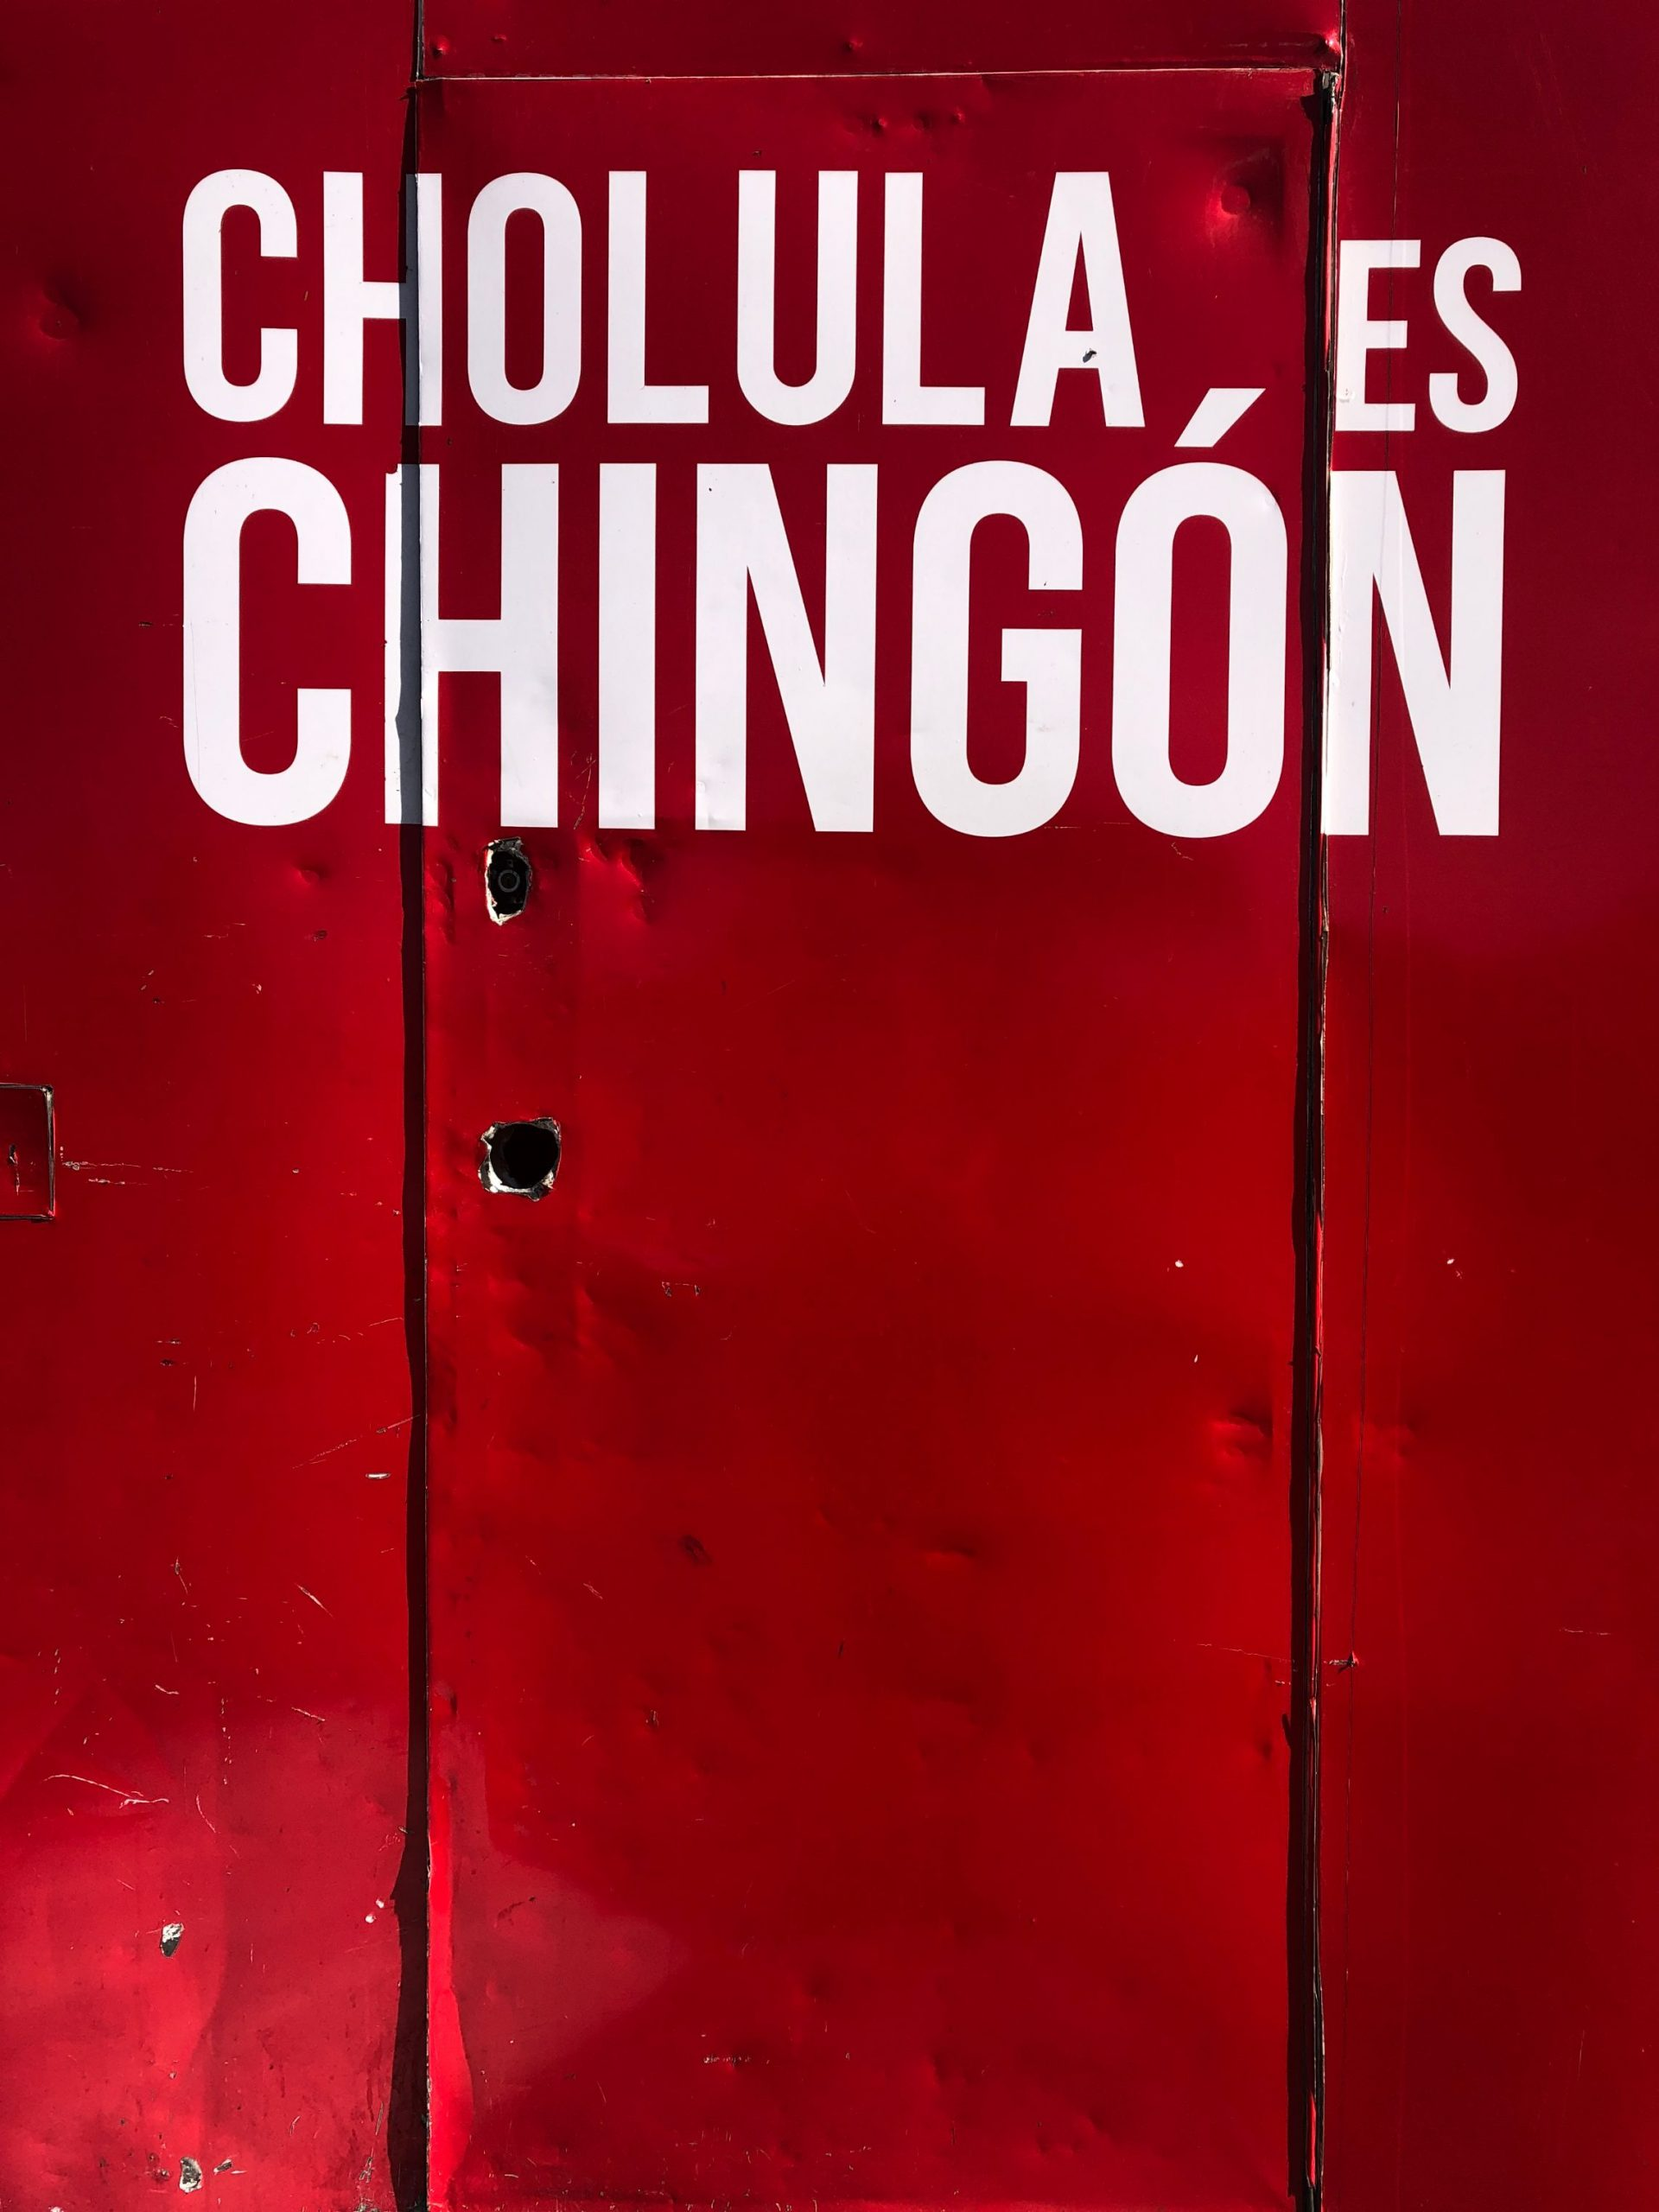 'Cholula es Chingon' sign